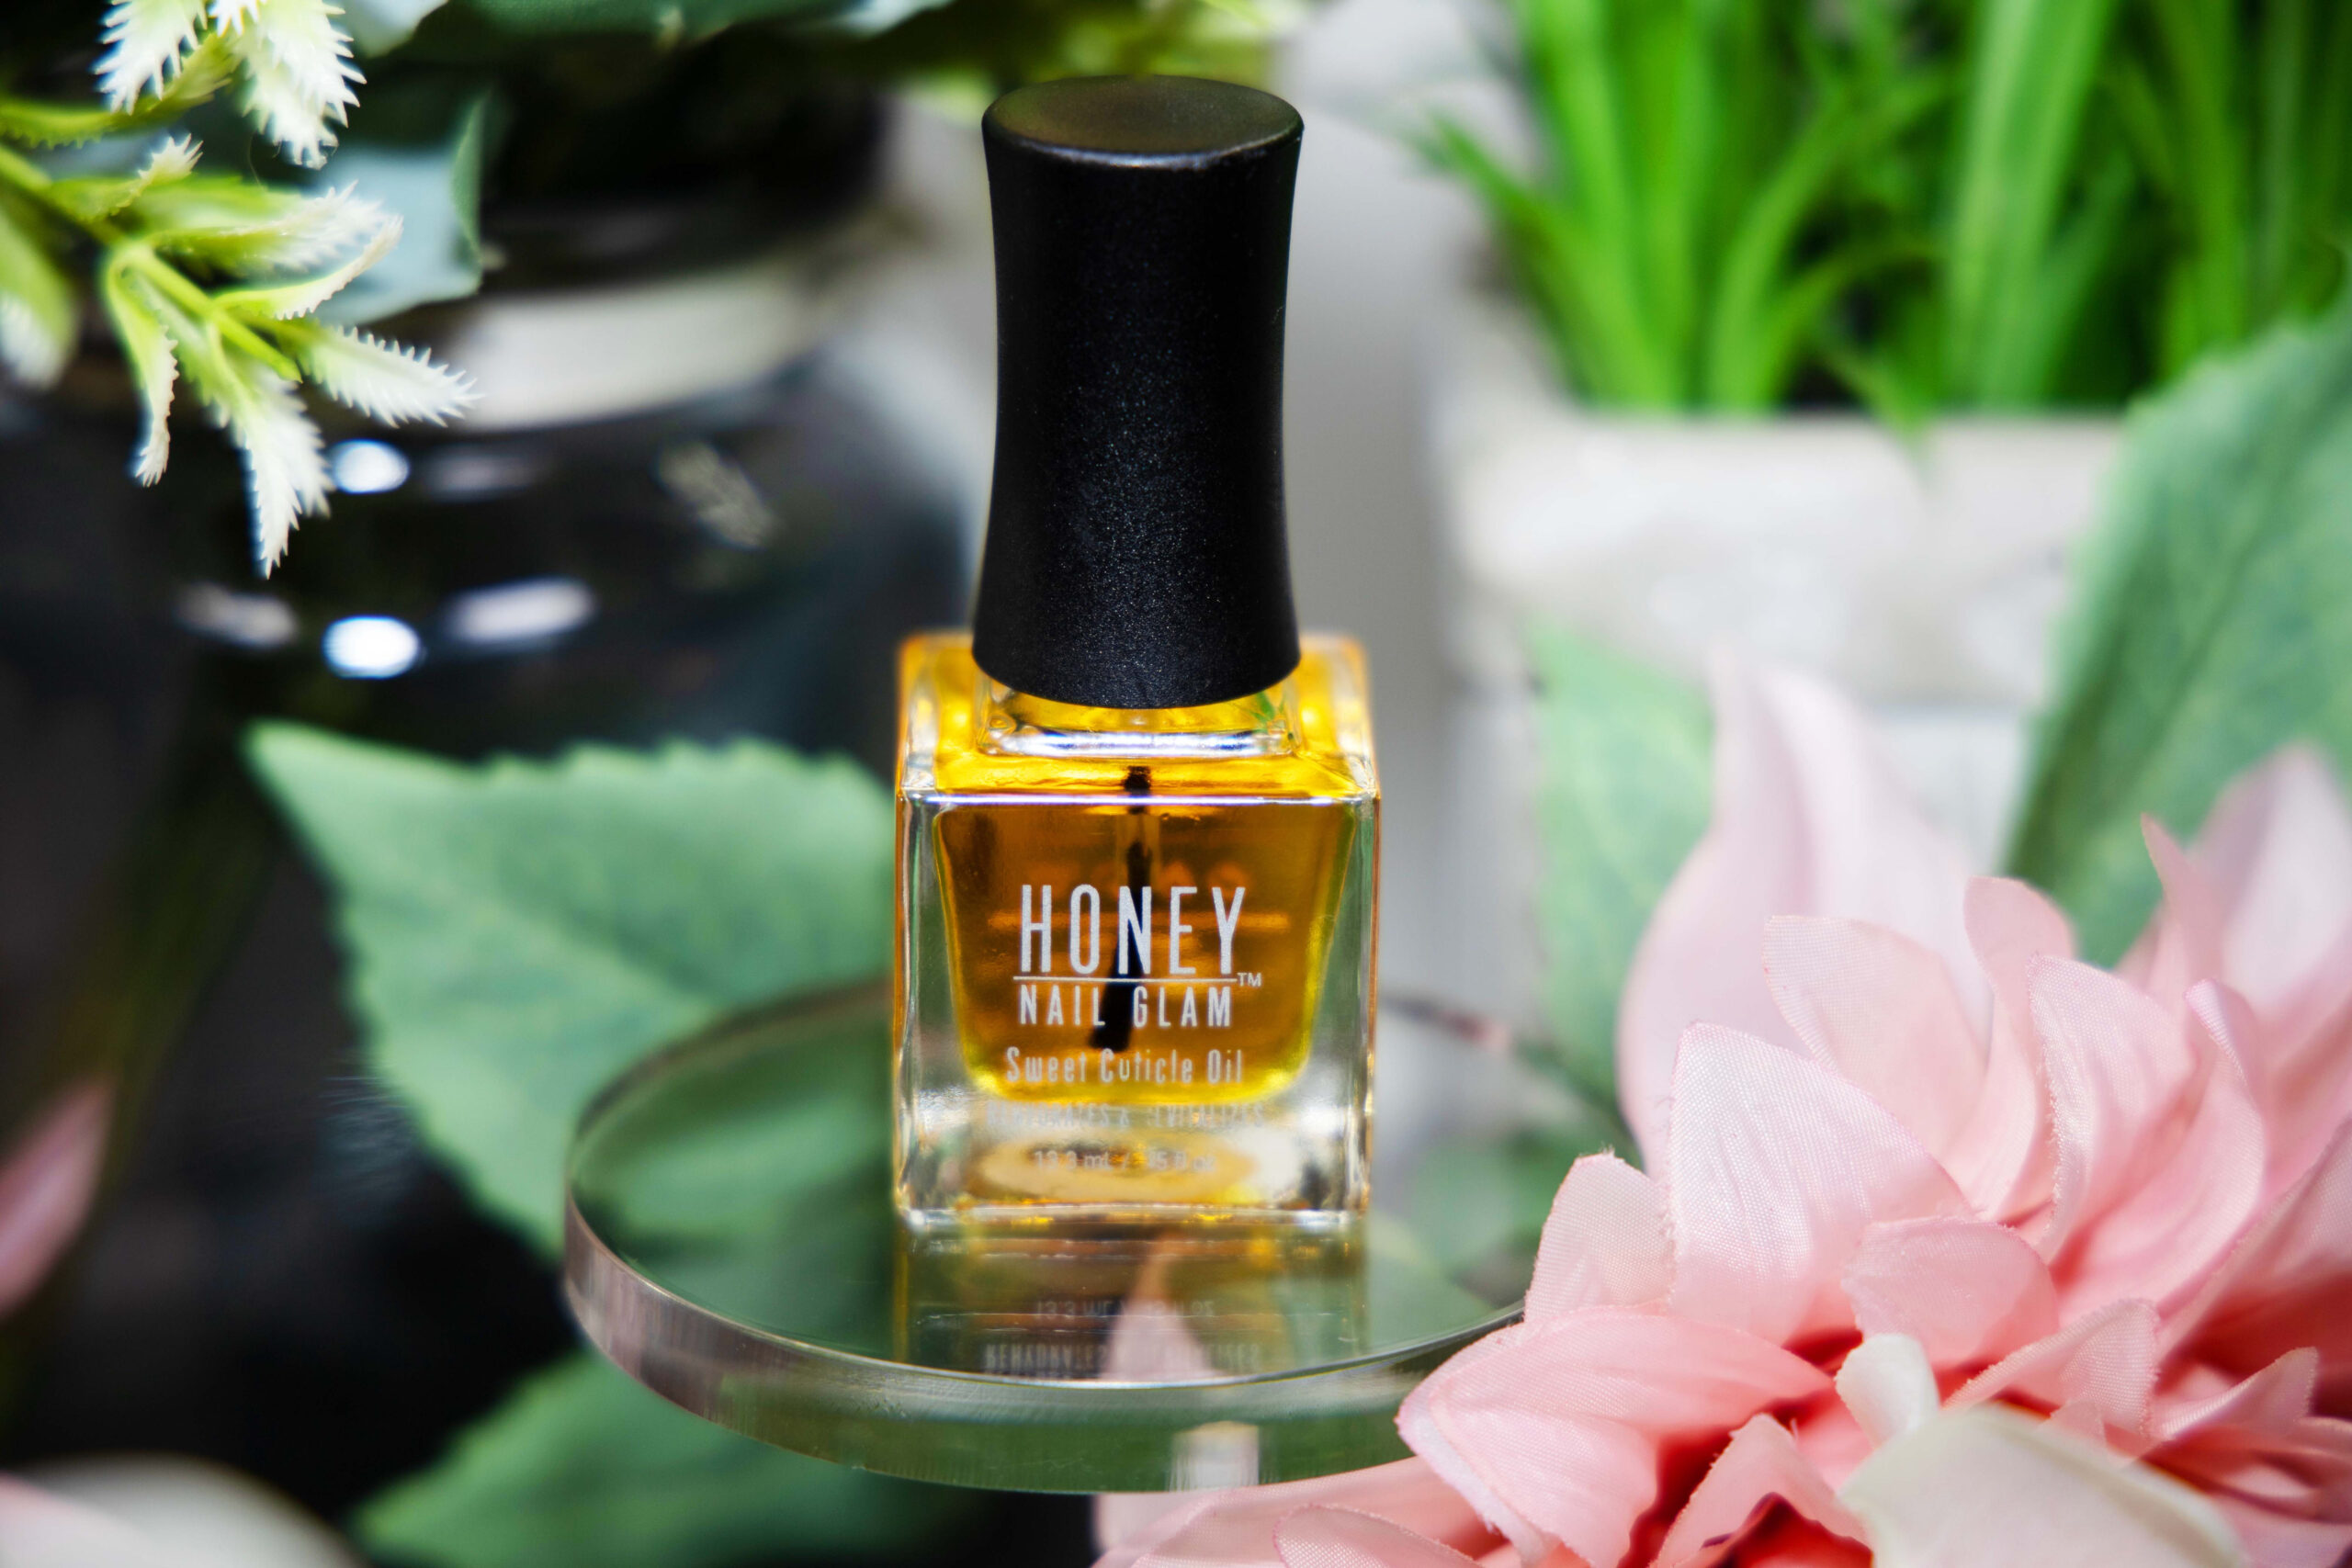 honey nail glam, beauty, nailcare